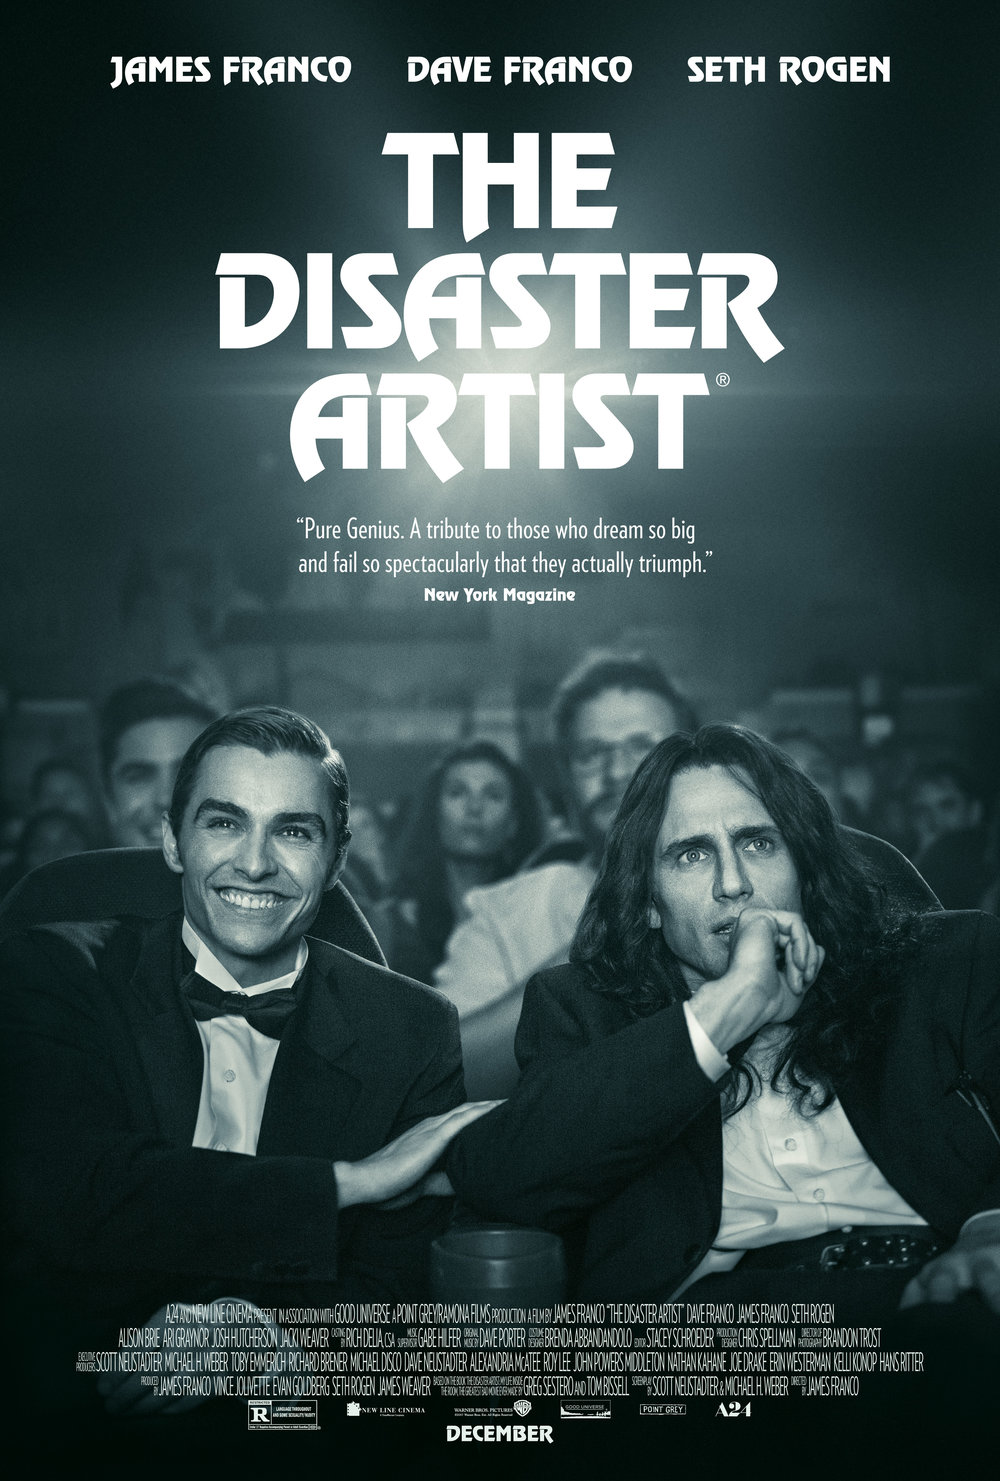 The Disaster Artist   (2017) dir. James Franco Rated: R image: ©2017  A24